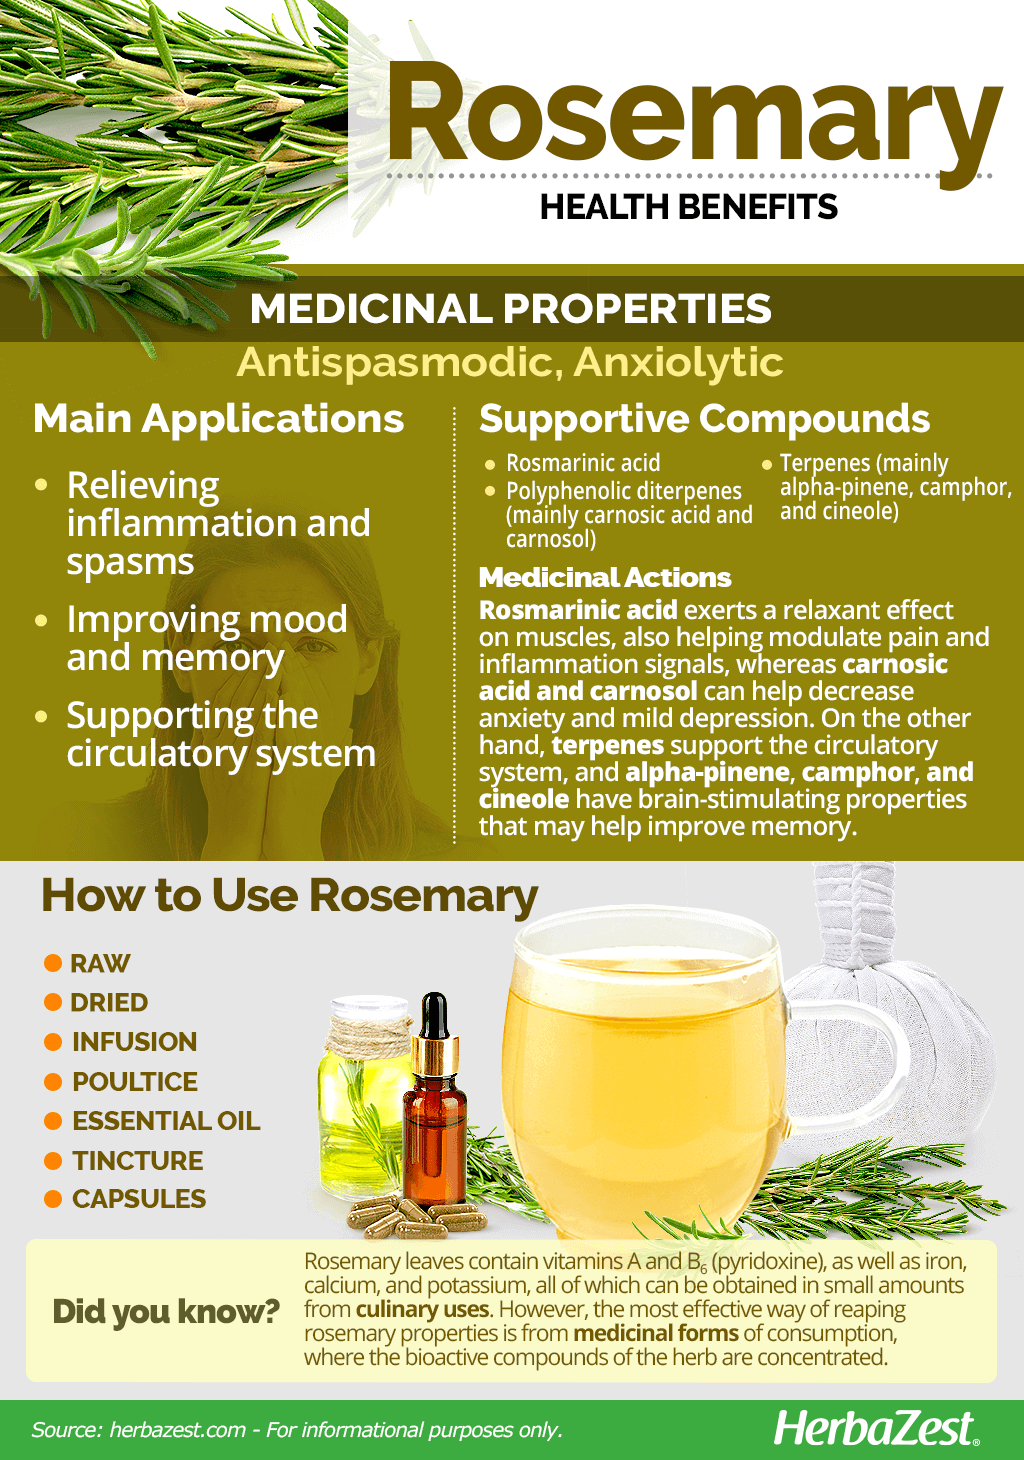 All About Rosemary